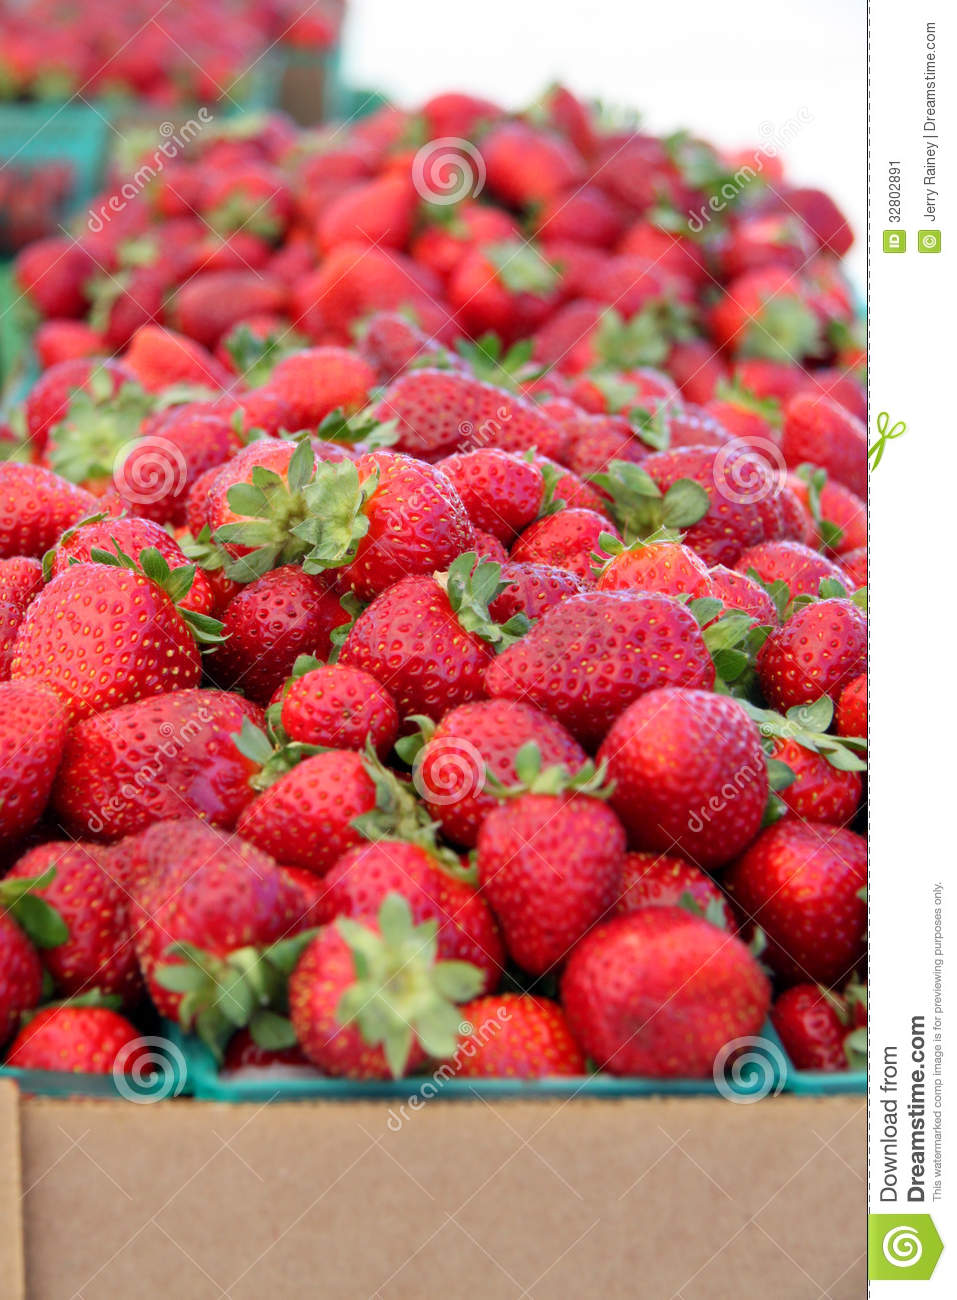 how to clean fresh picked strawberries